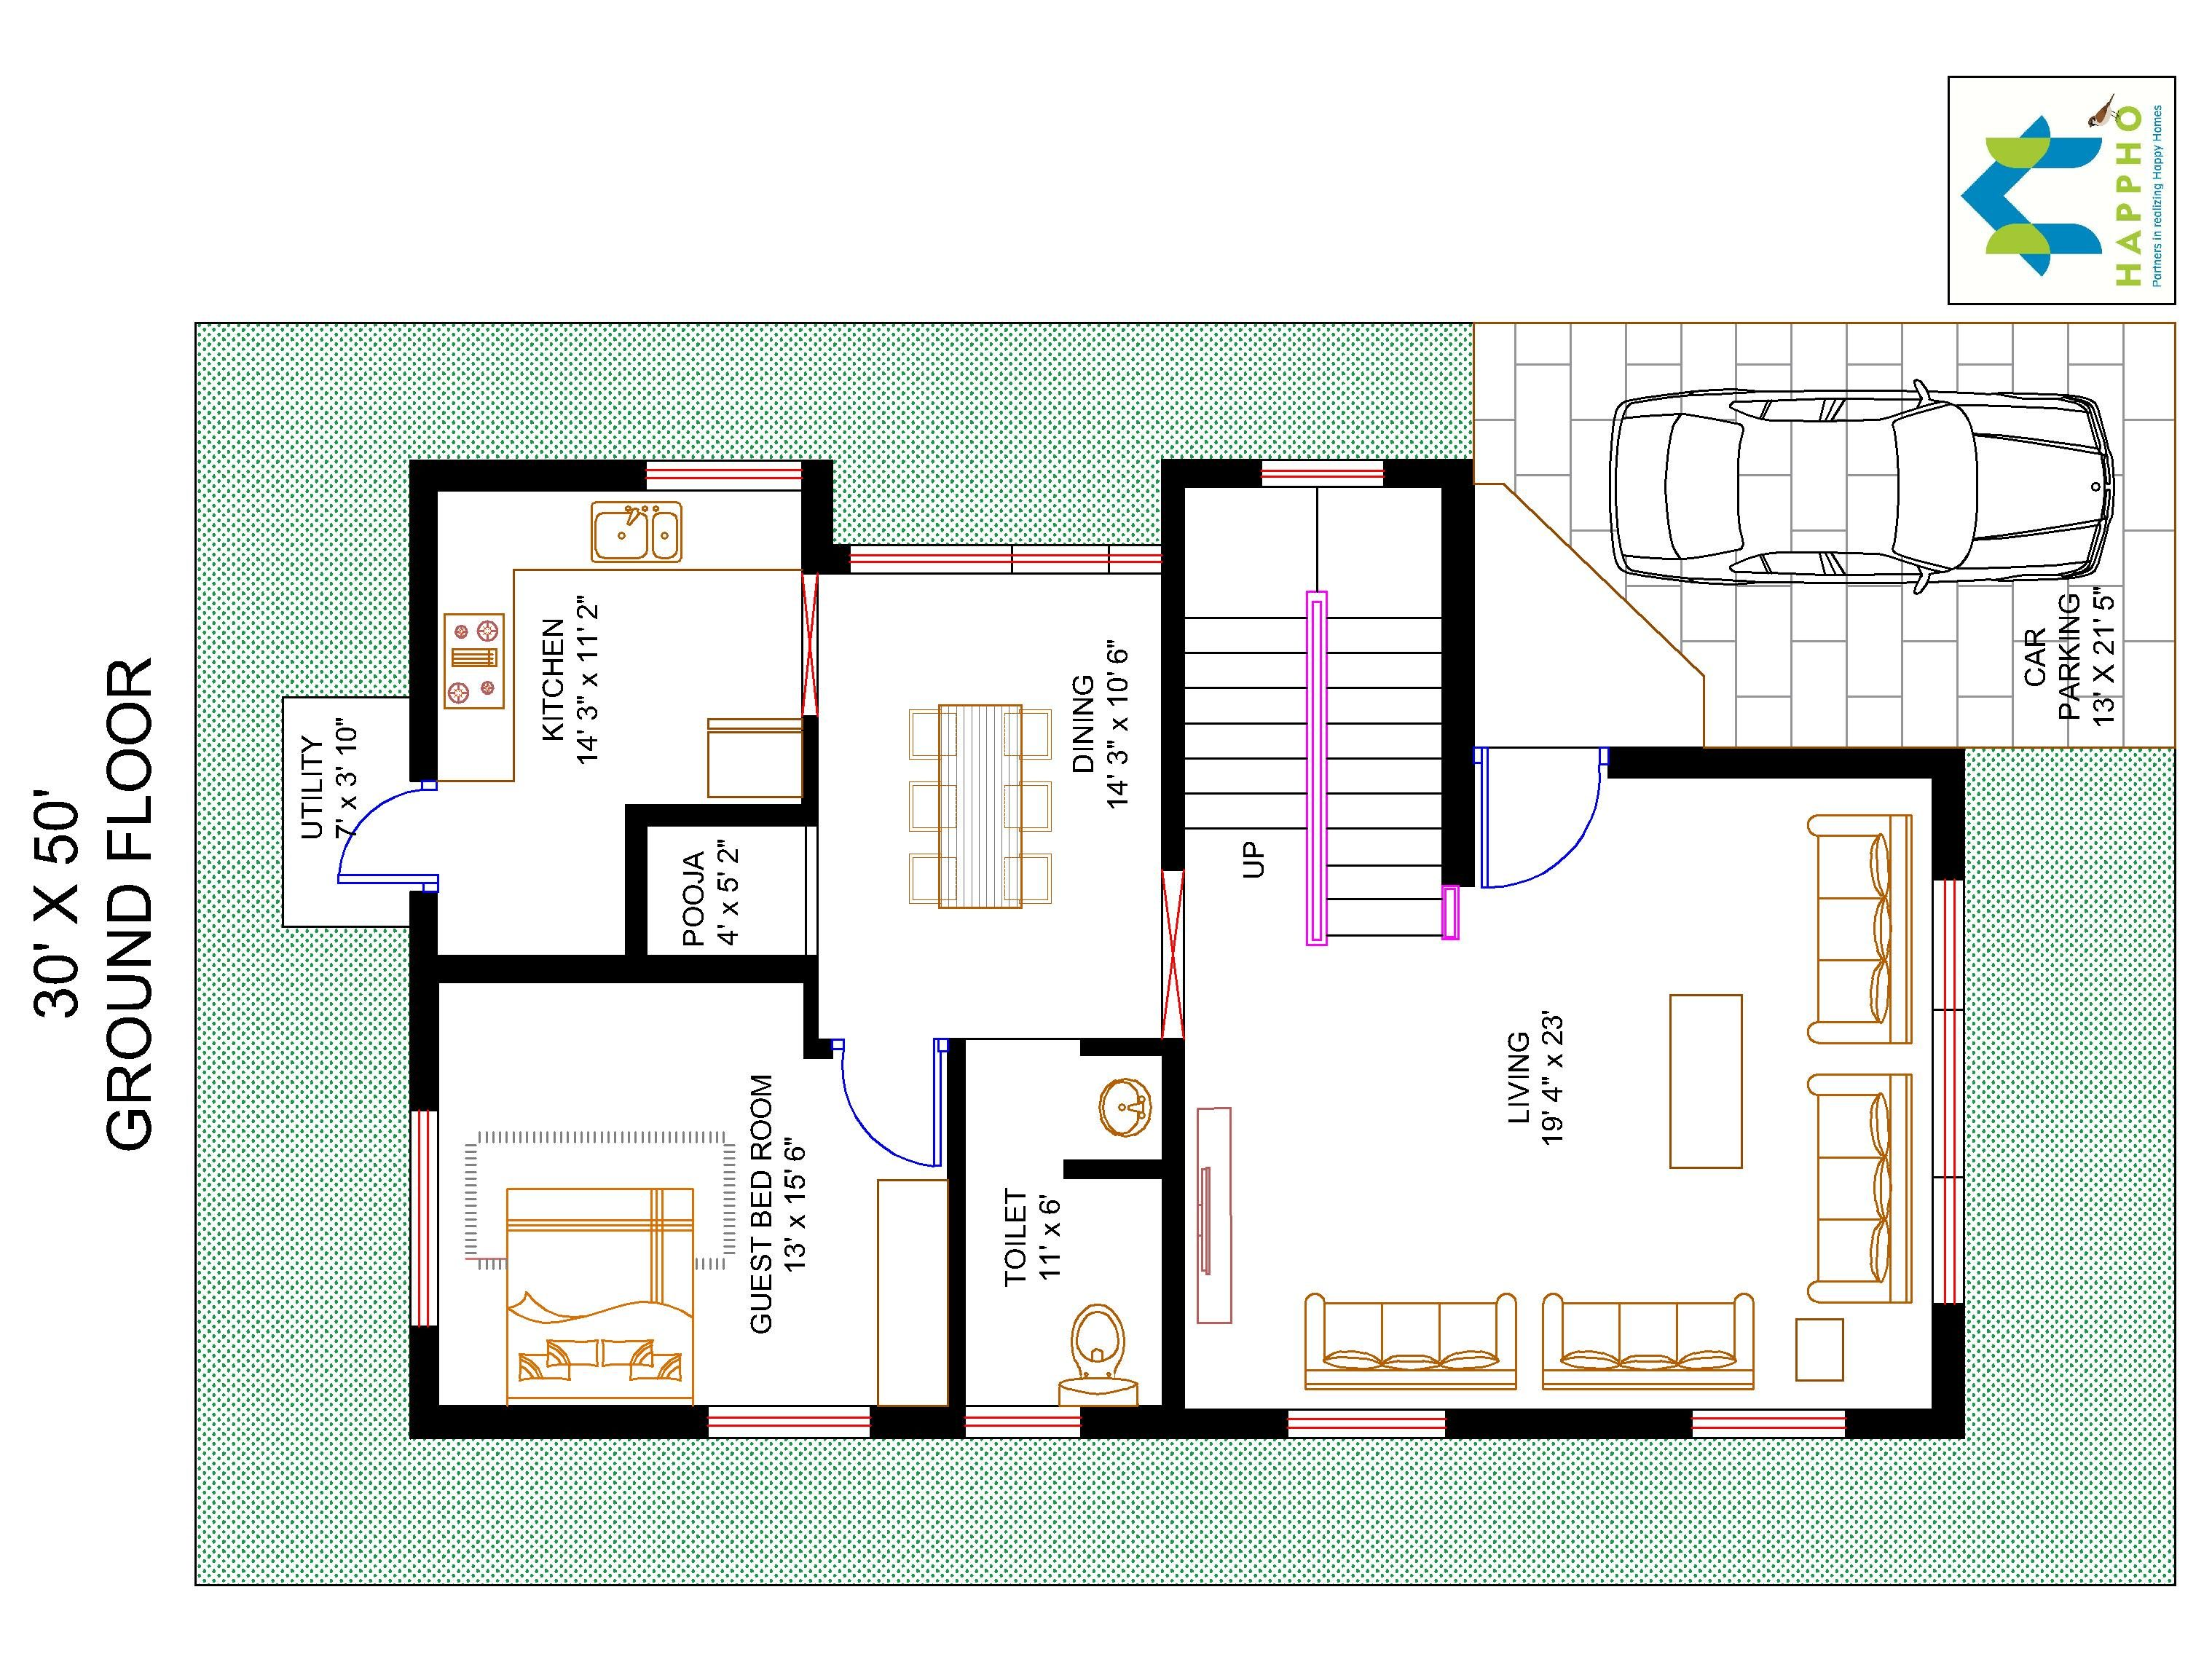 3 bhk floor plan for 30 x 50 plot 1500 square feet 166 for Plan of 3bhk house